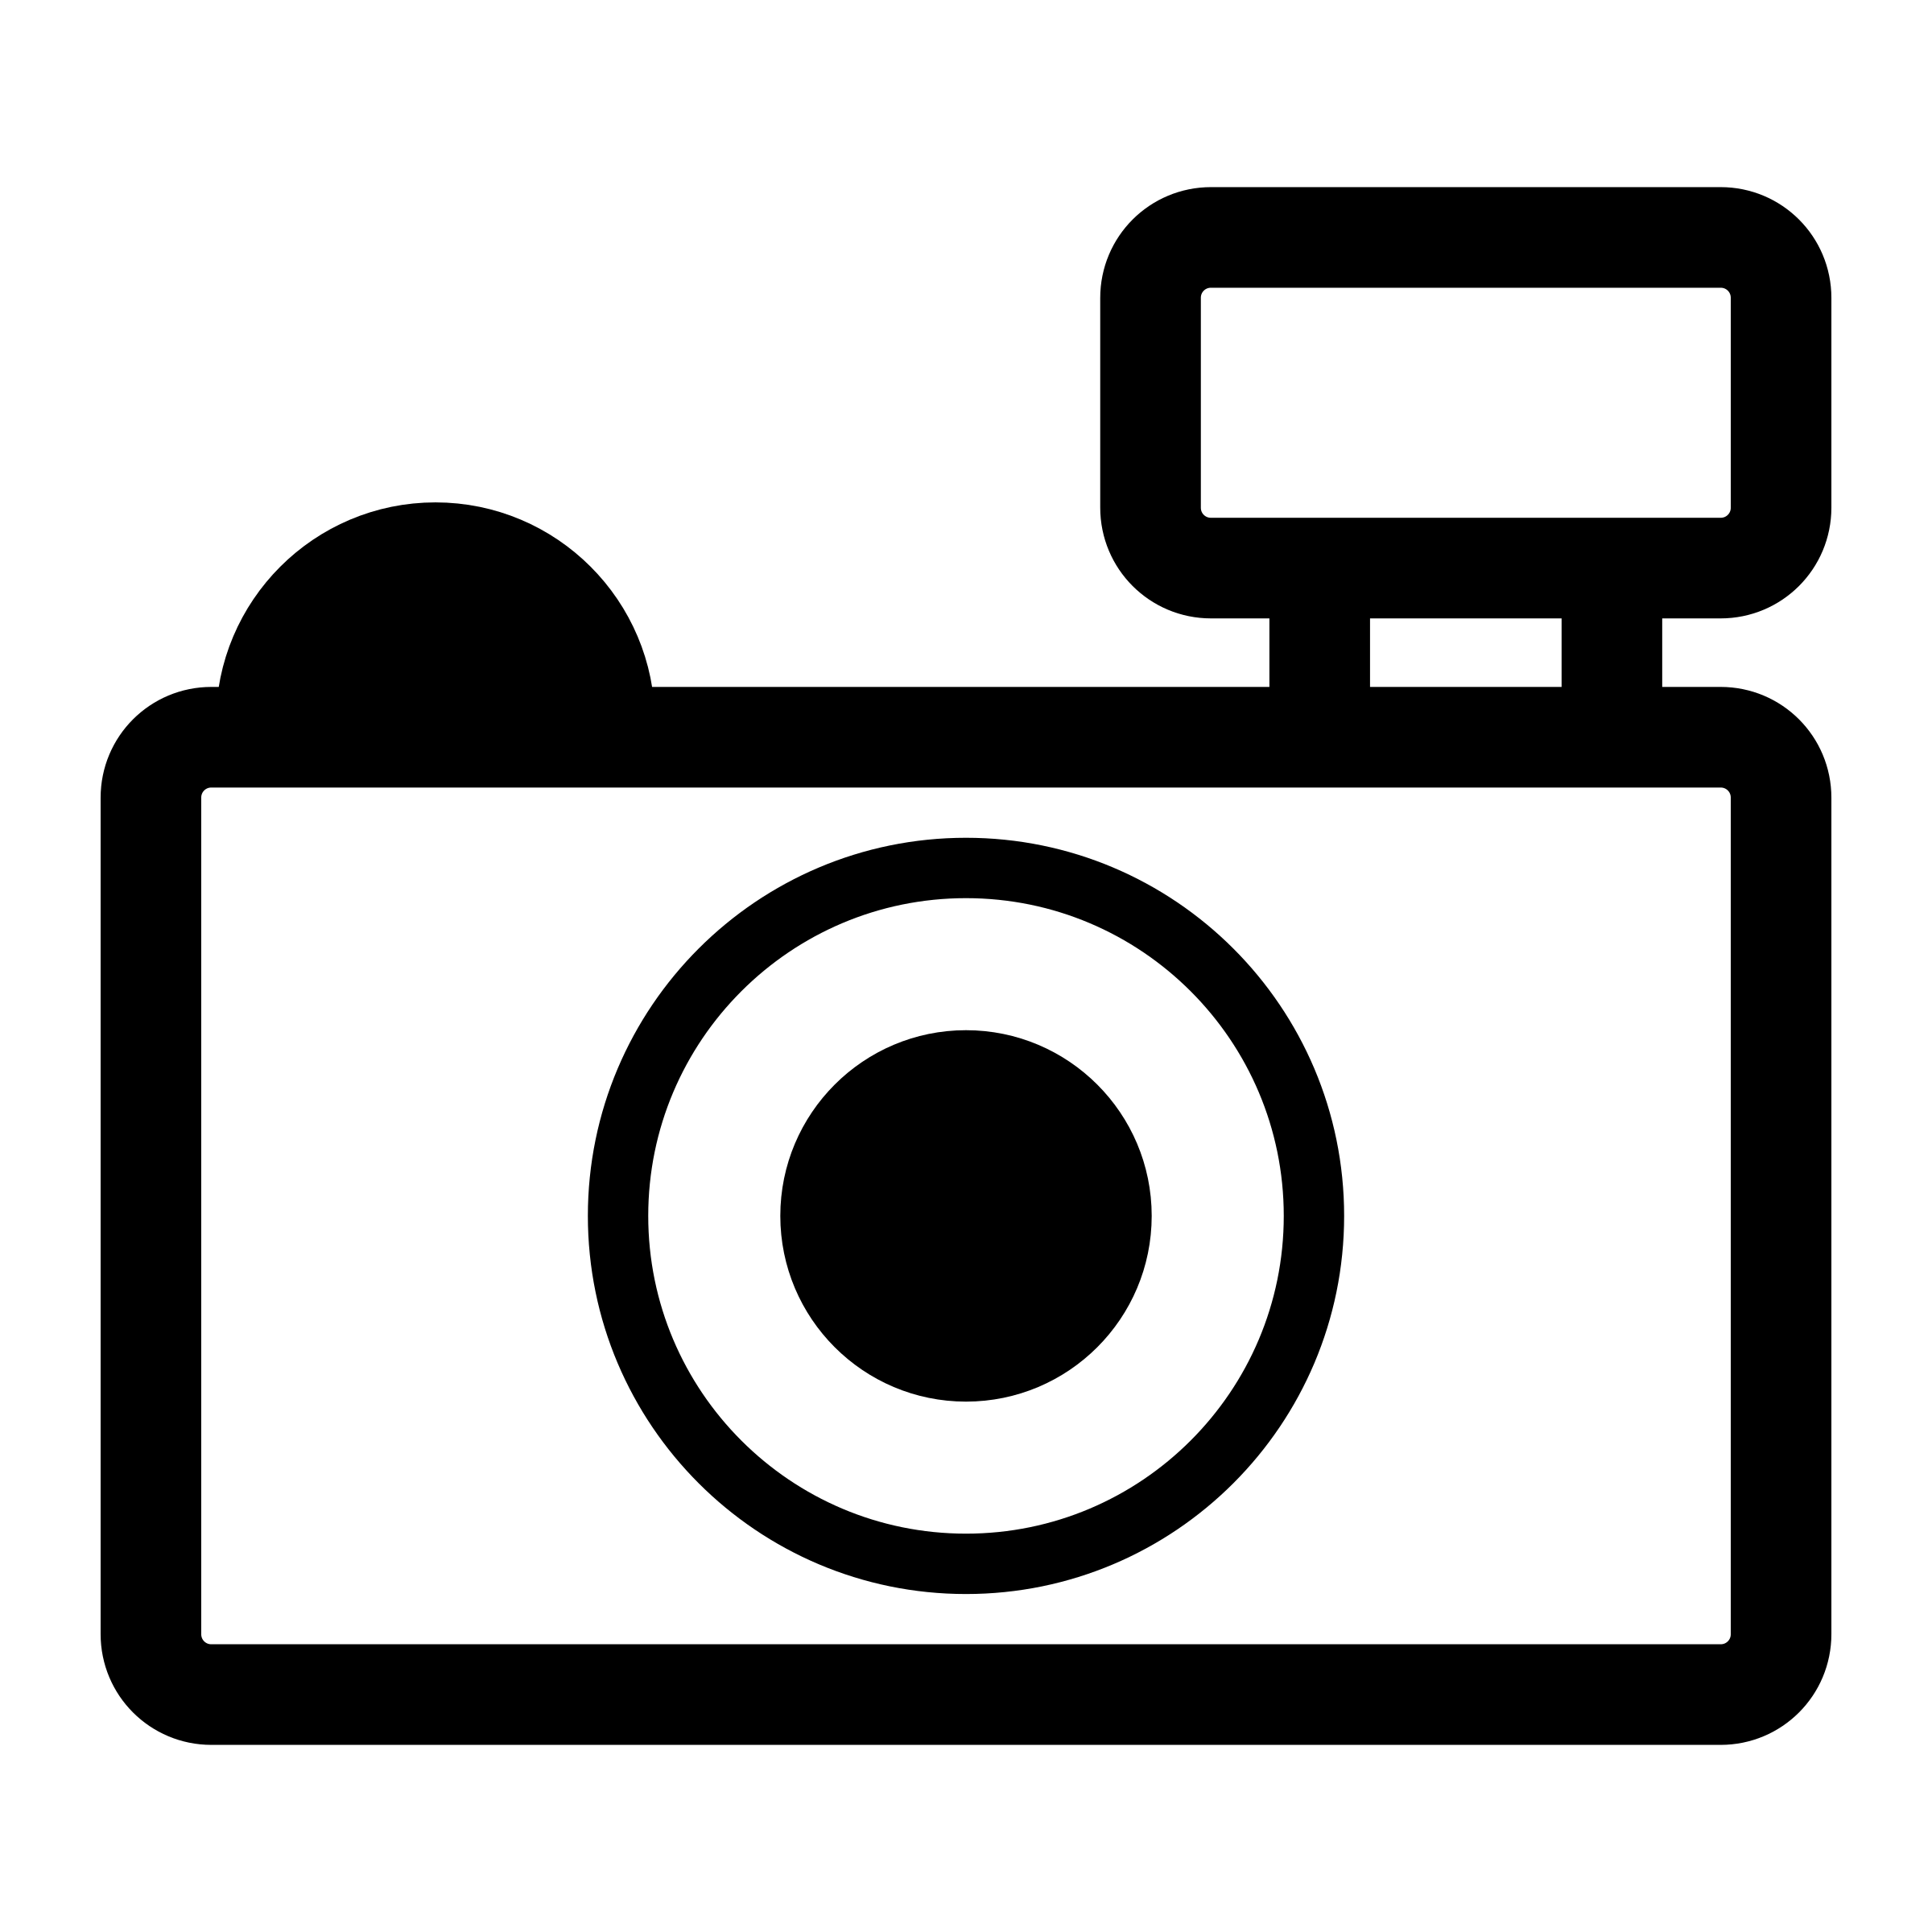 Old camera clipart free clip art image image